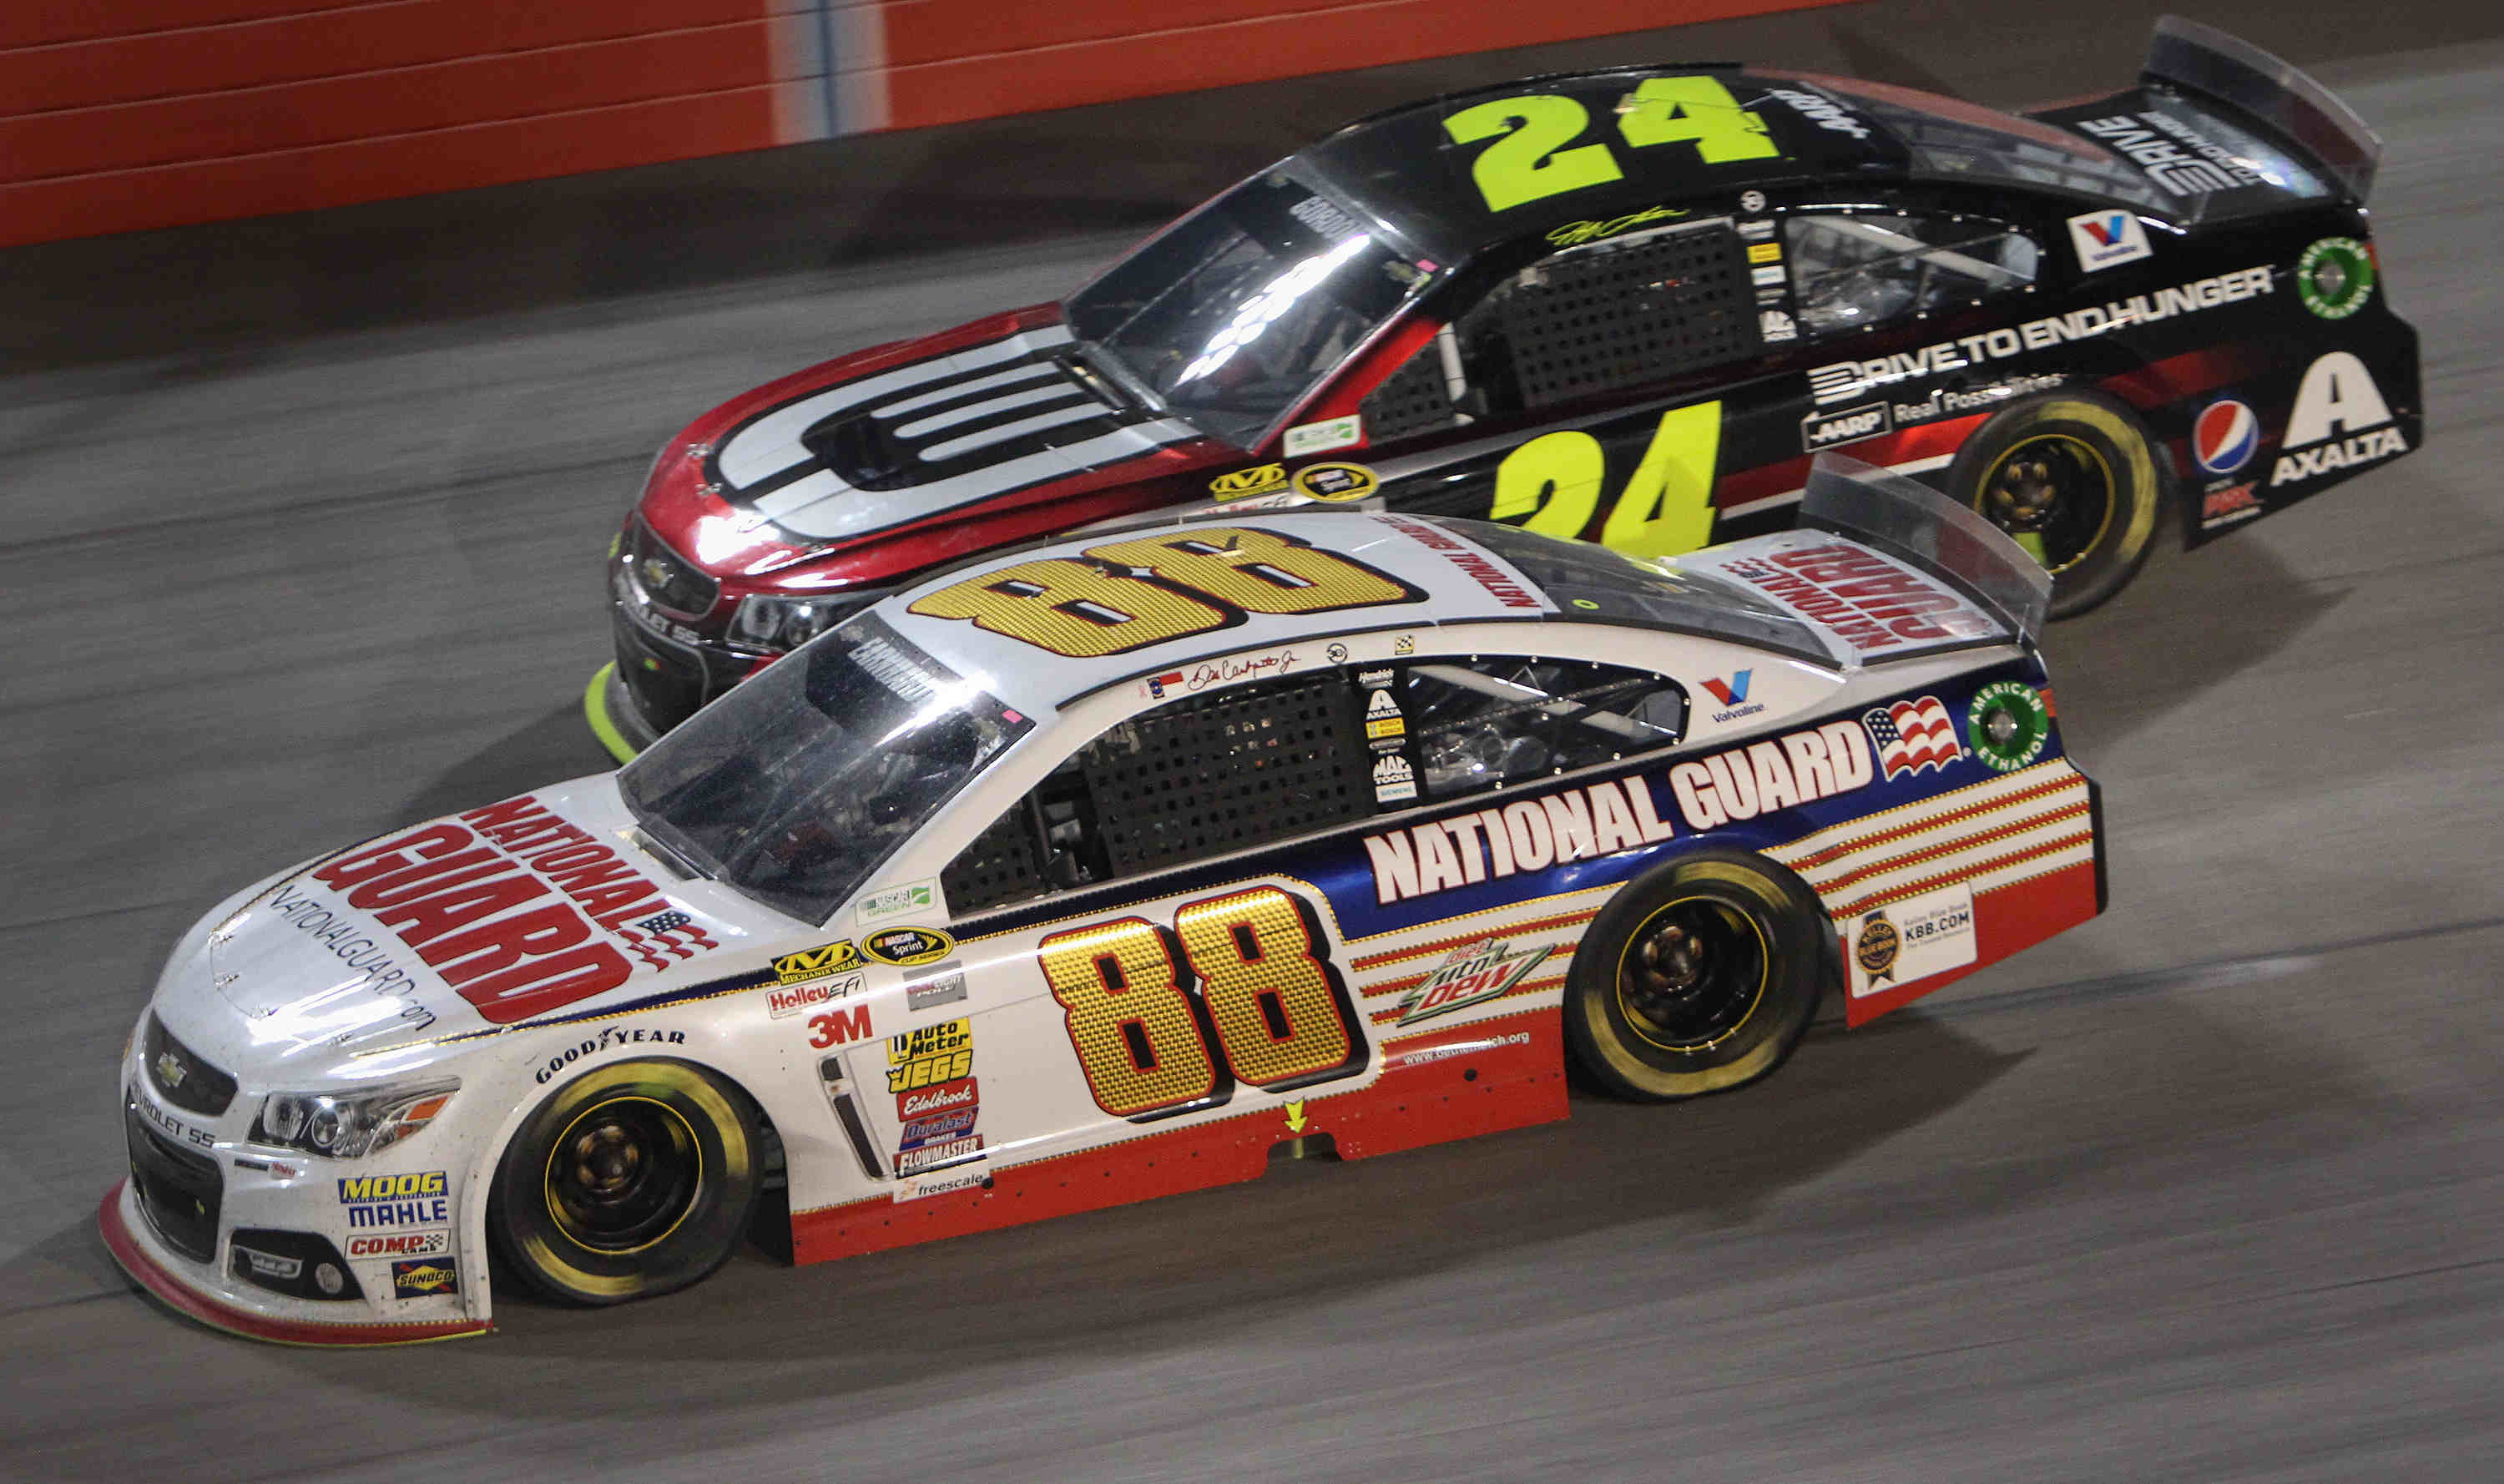 Dale Earnhardt Jr. (88) came within a lap of winning for the first